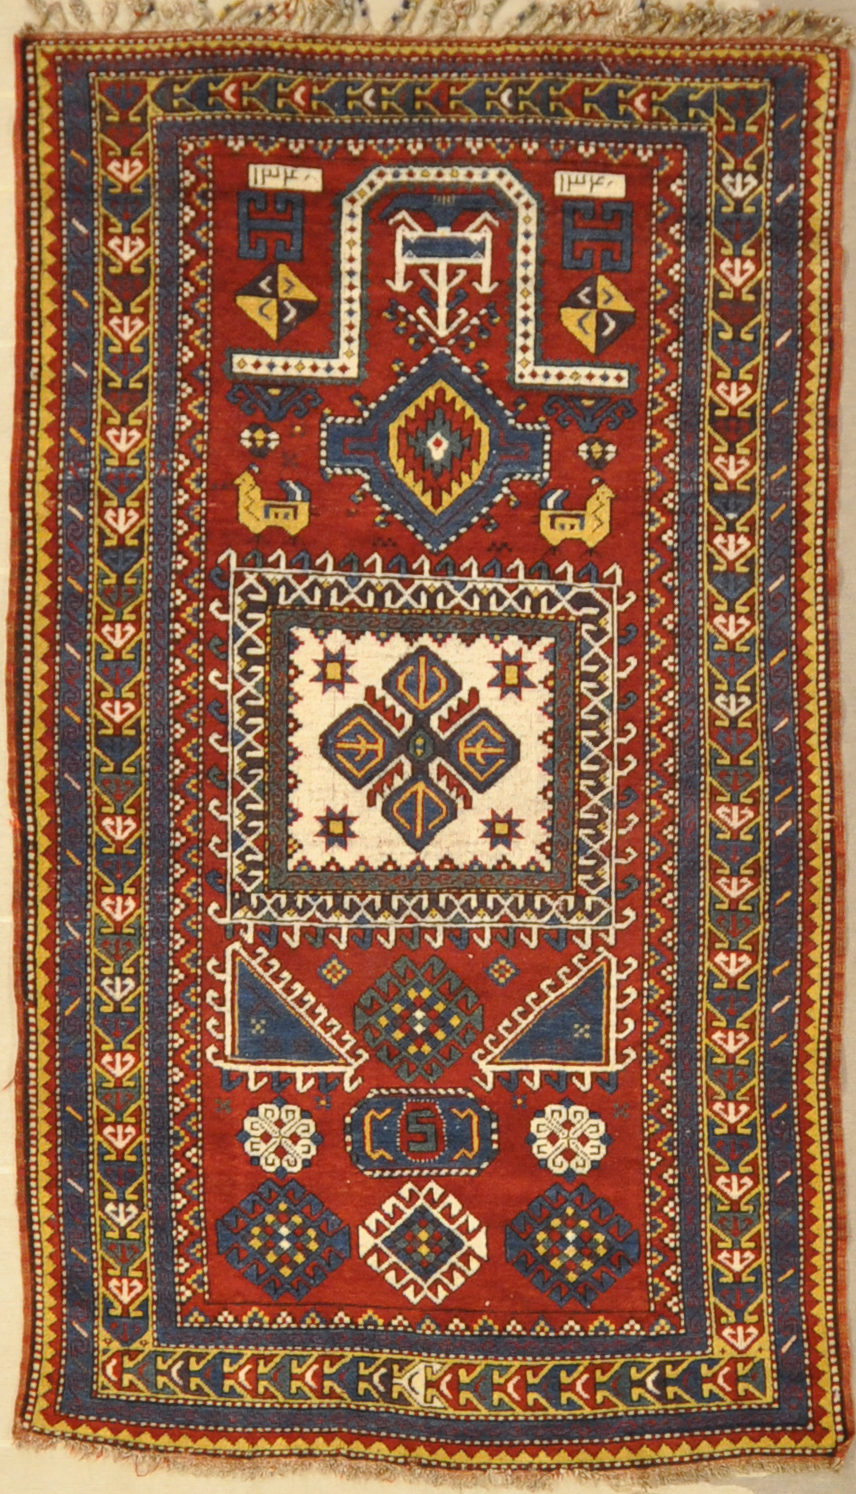 Rare Antique Kazak Prayer Rug Caucasian Rug Rugs Amp More